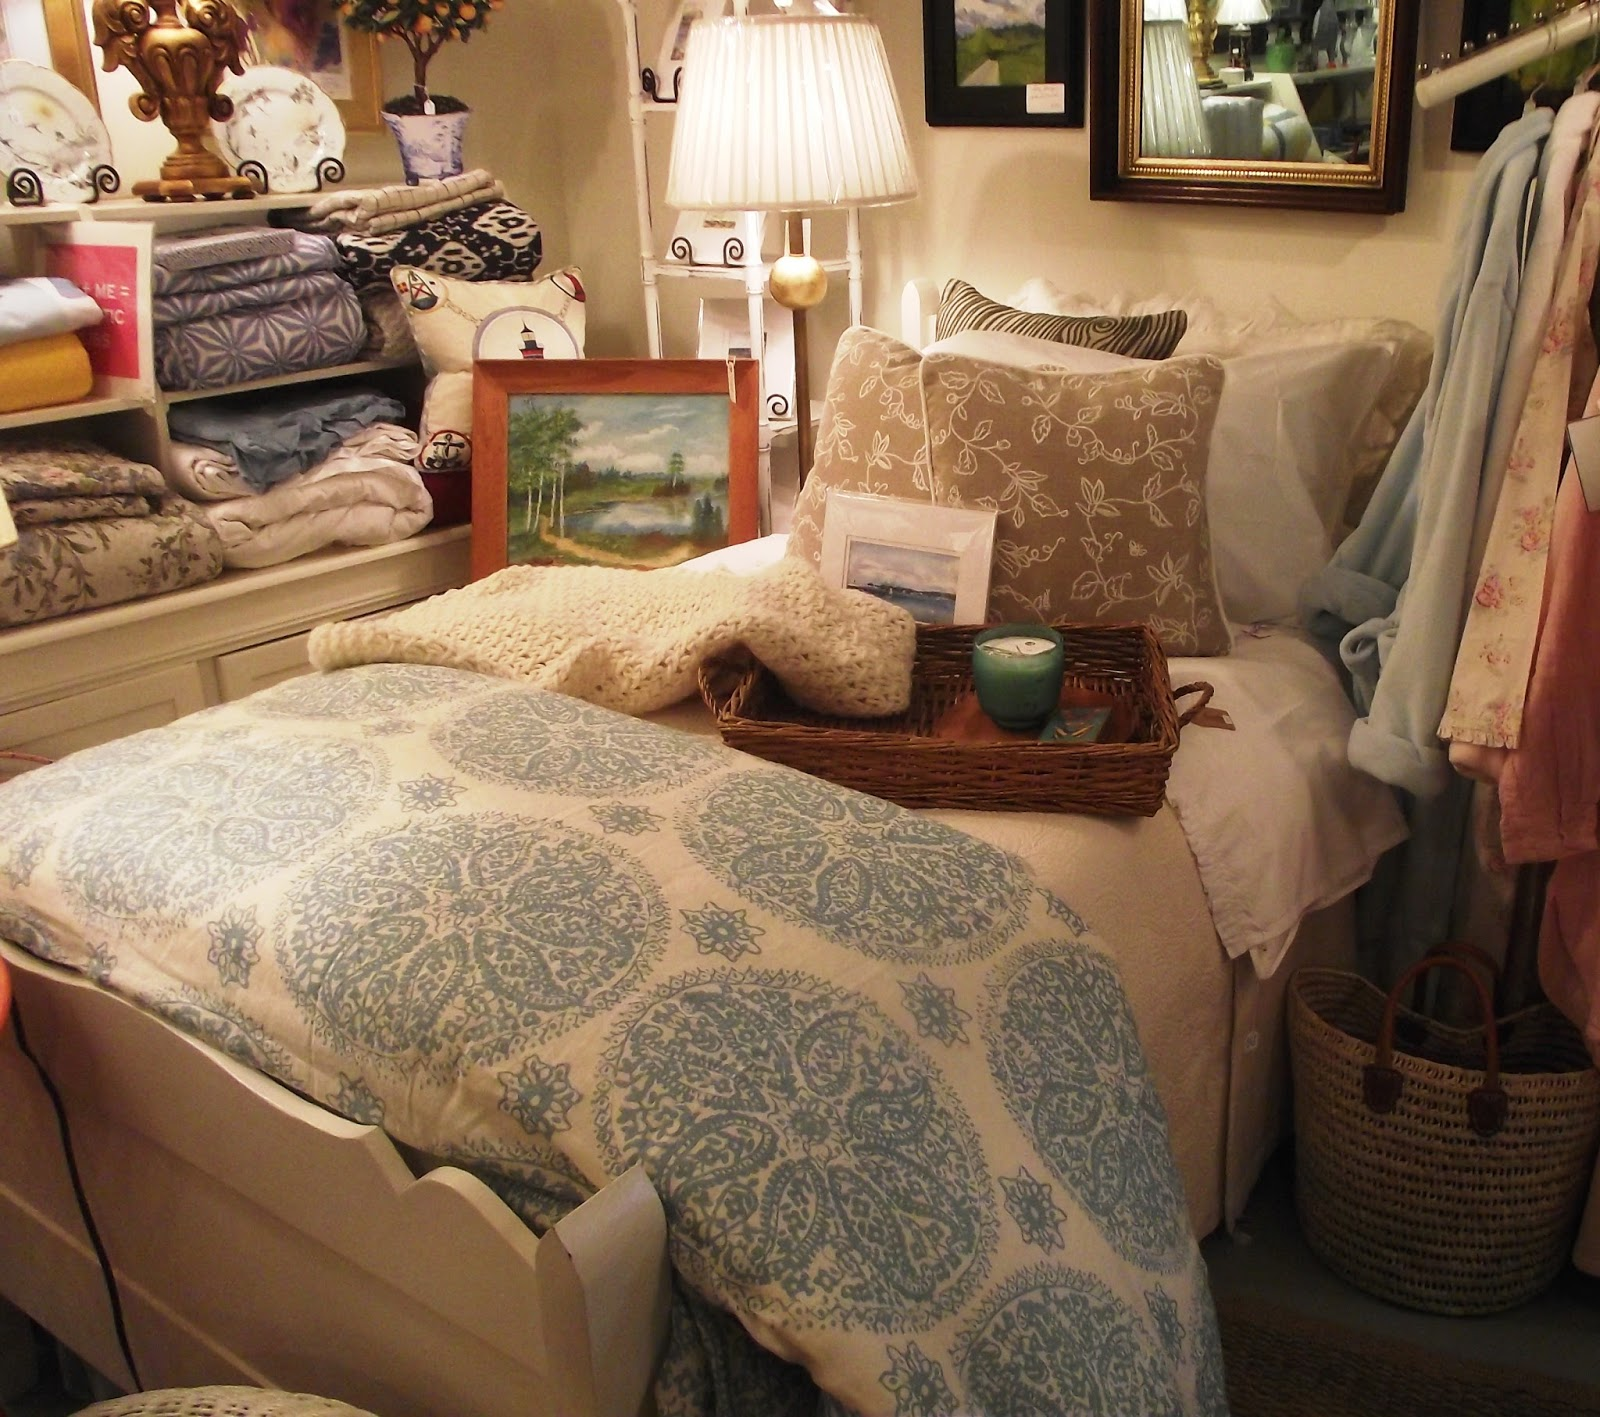 Anchor cottage freshwater decor rocking the beach scene for Beach scene bedroom ideas